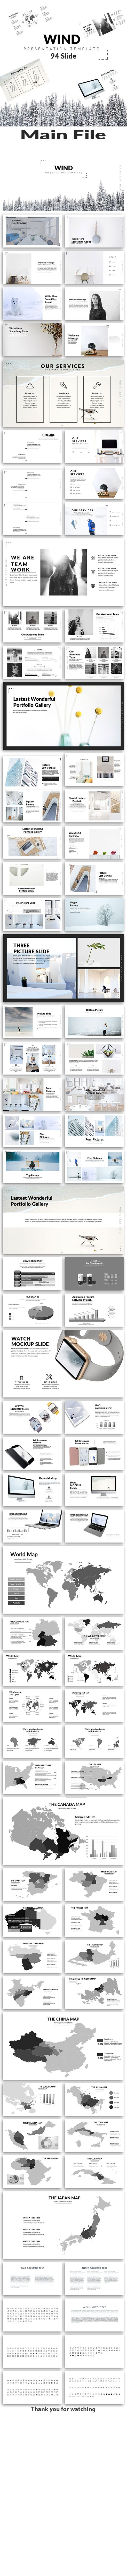 Wind - Creative PowerPoint Template - Creative #PowerPoint #Templates Download here: https://graphicriver.net/item/wind-creative-powerpoint-template/19492783?ref=alena994